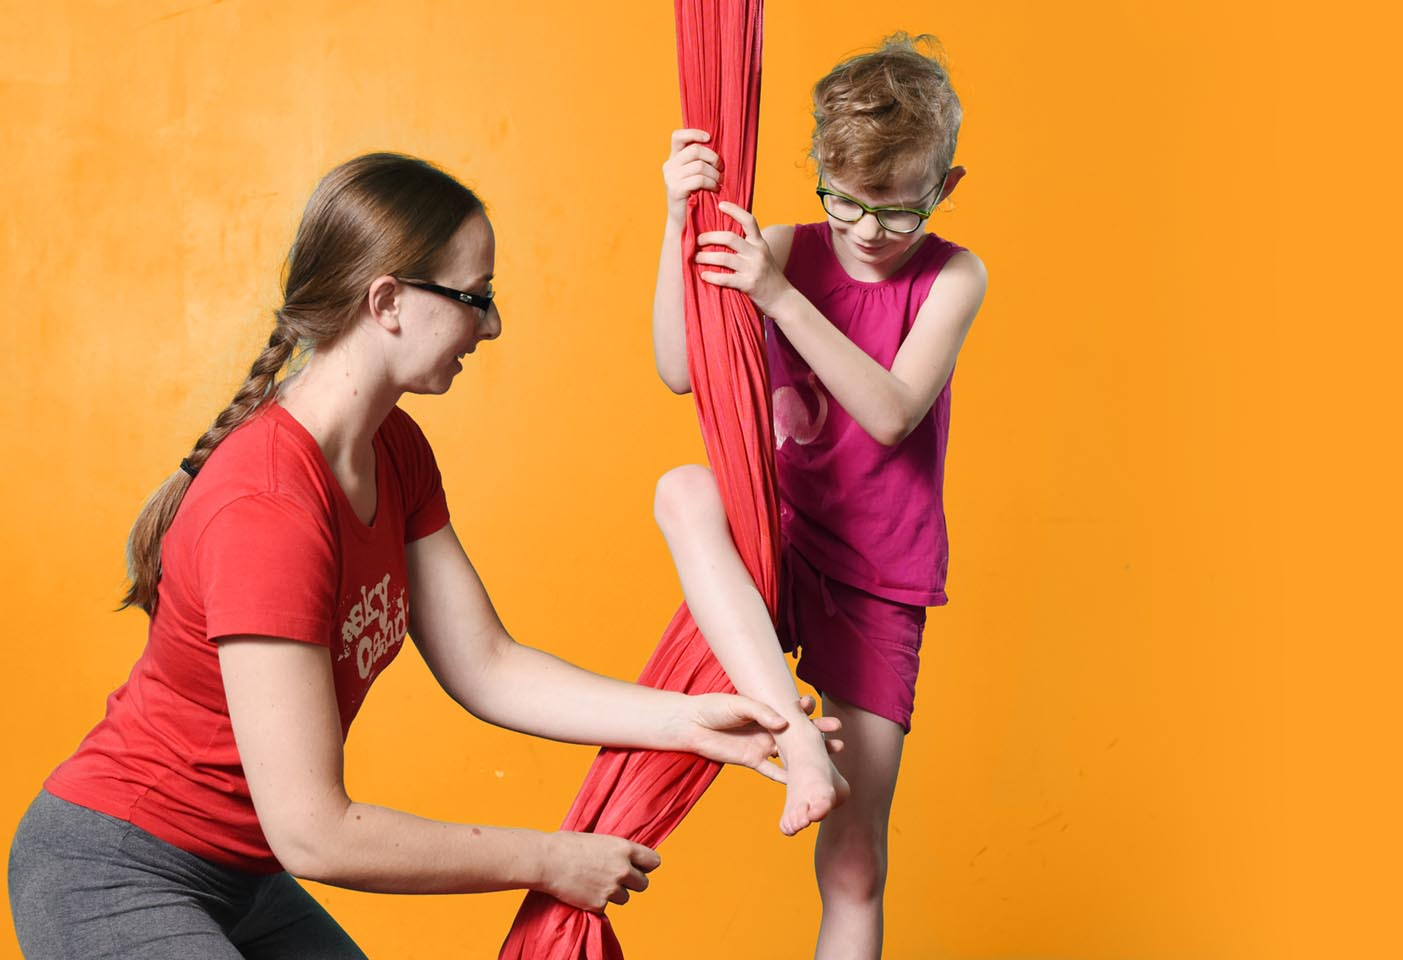 female teacher helping child on aerial silks